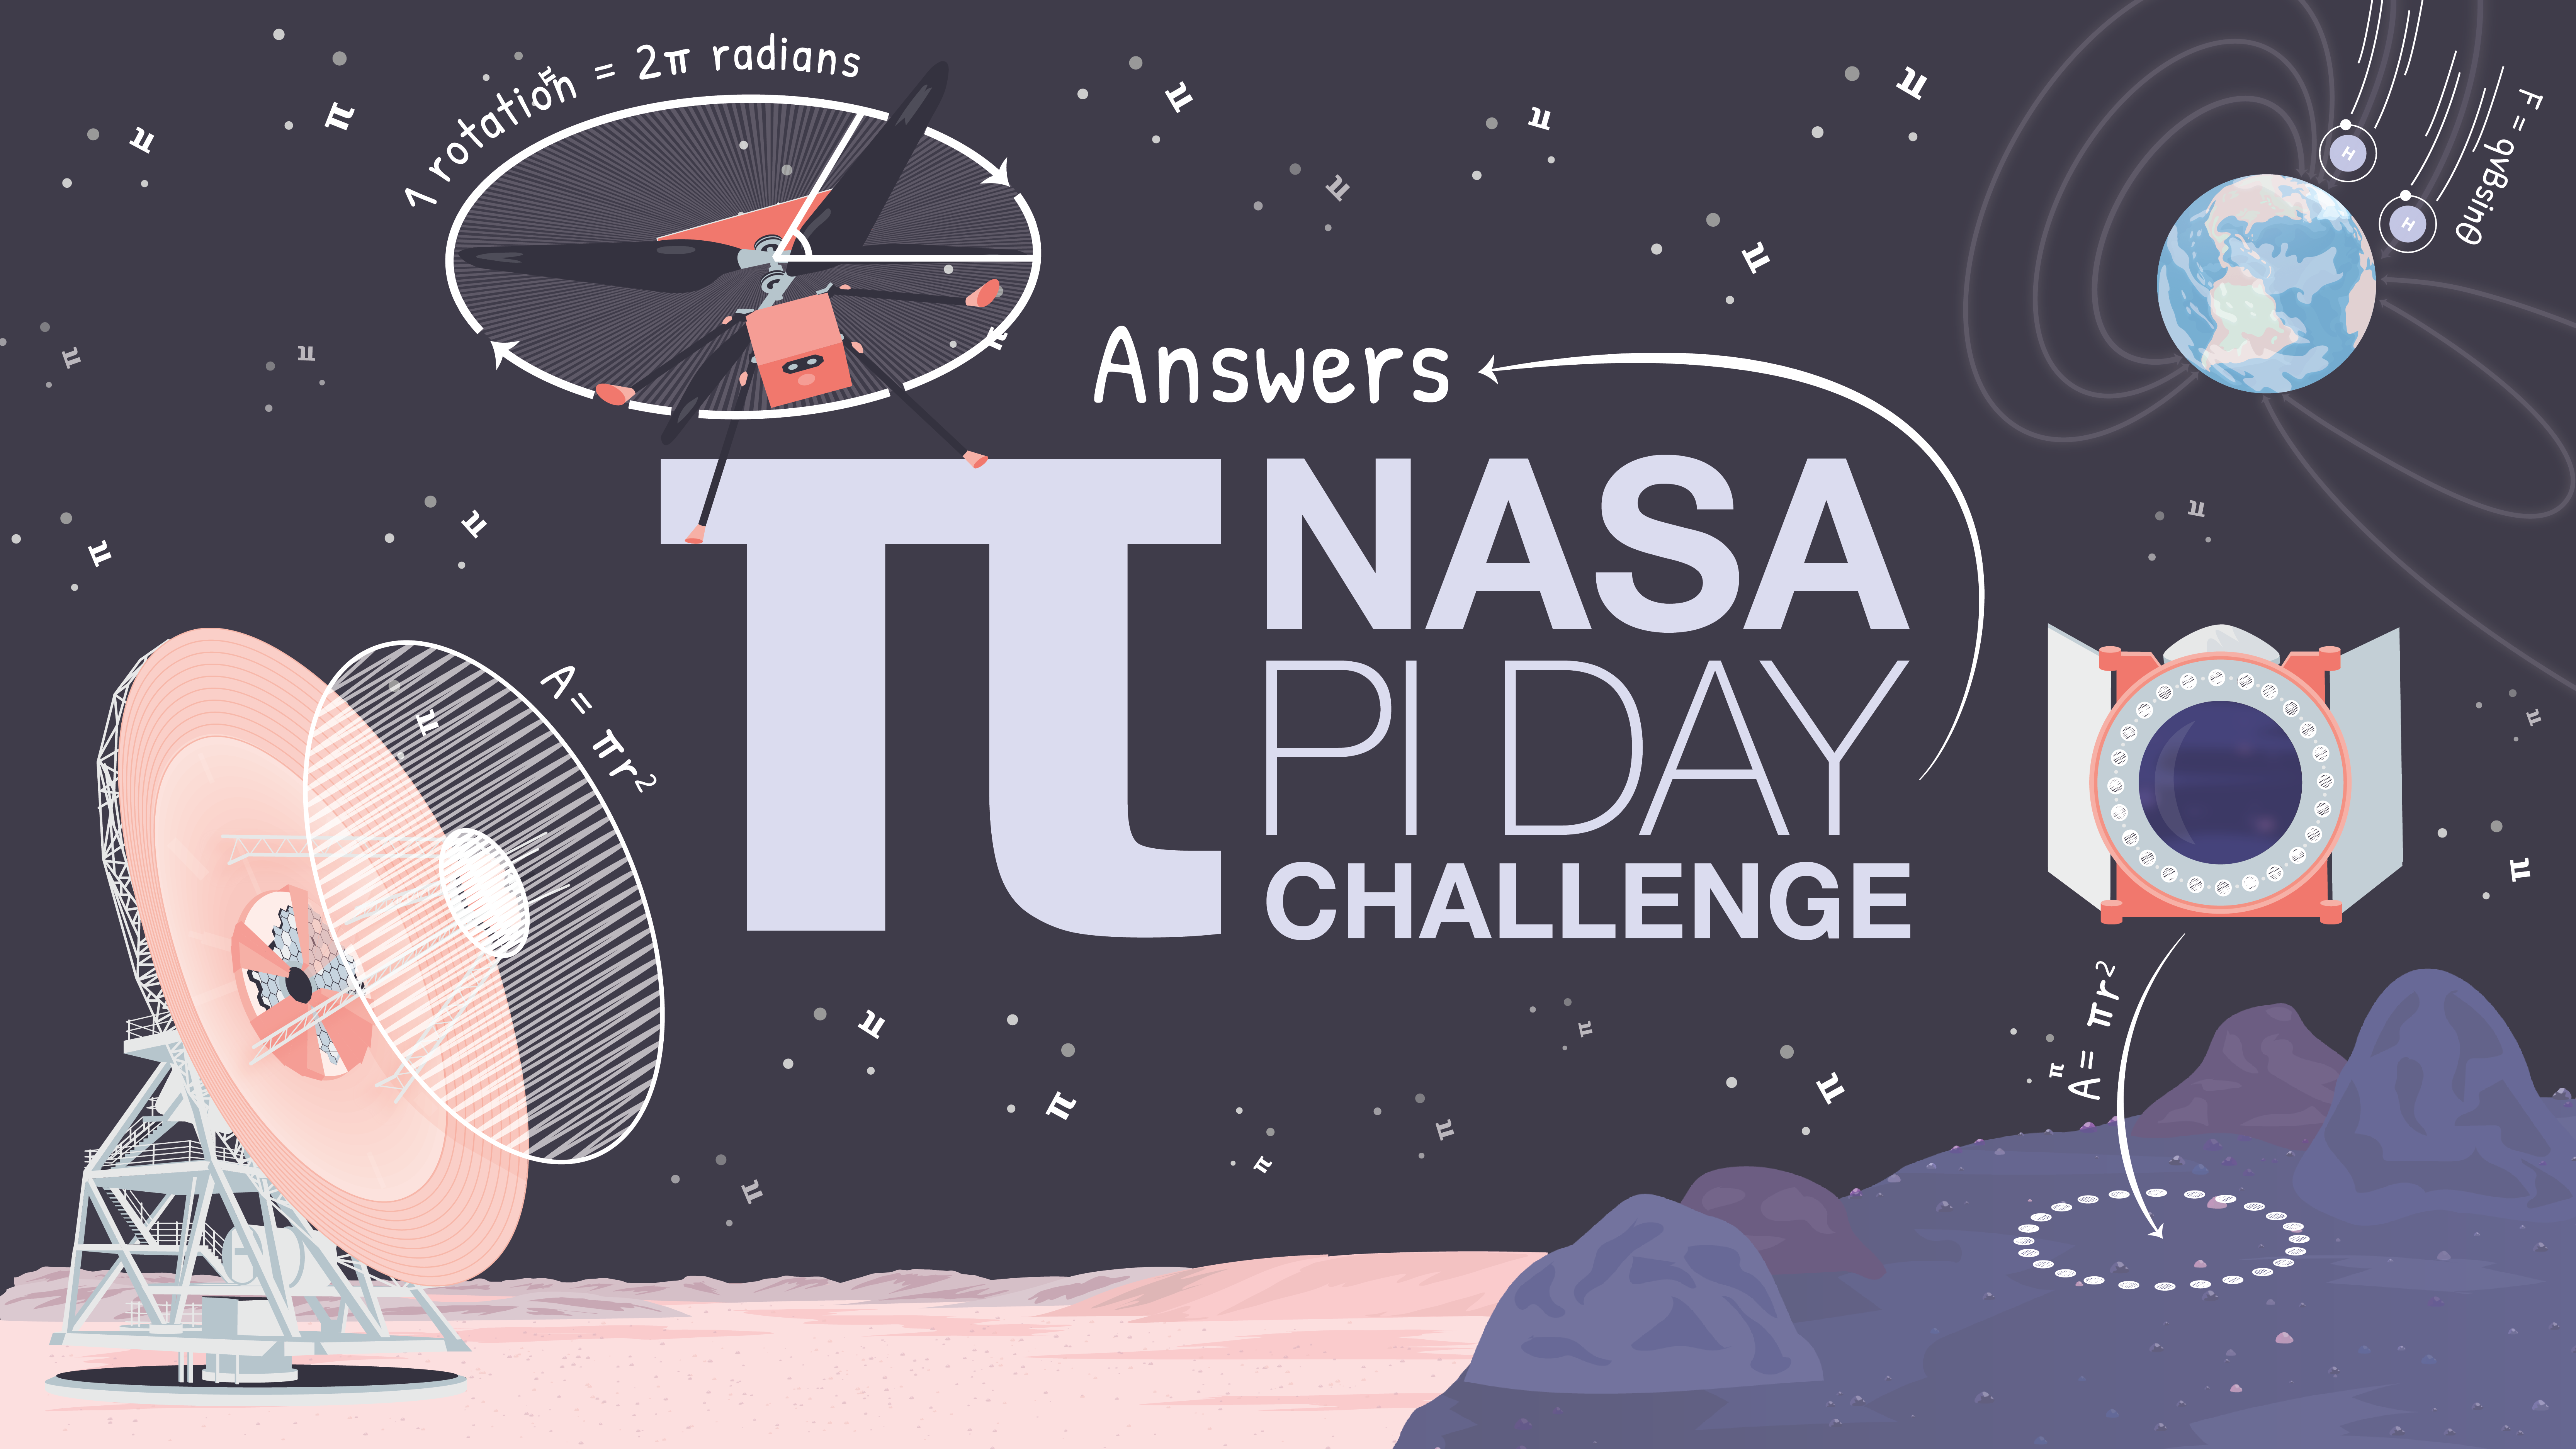 Get the answers to the 2021 NASA Pi Day Challenge